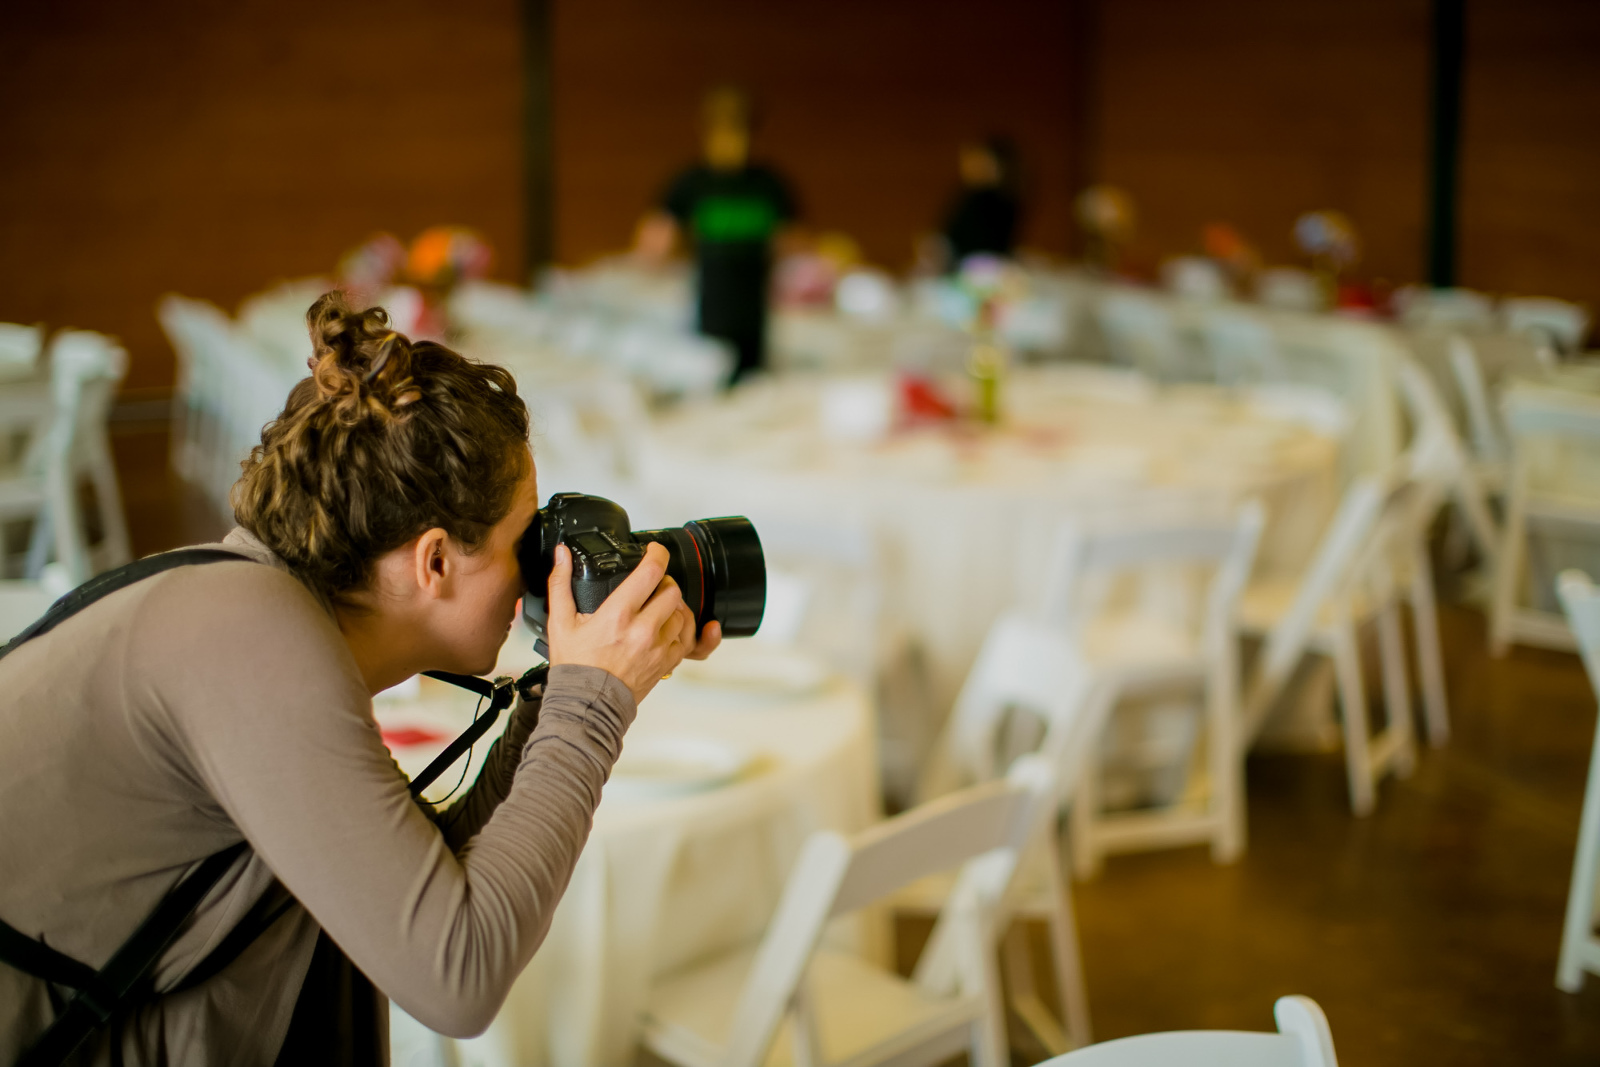 Shooting a wedding reception.